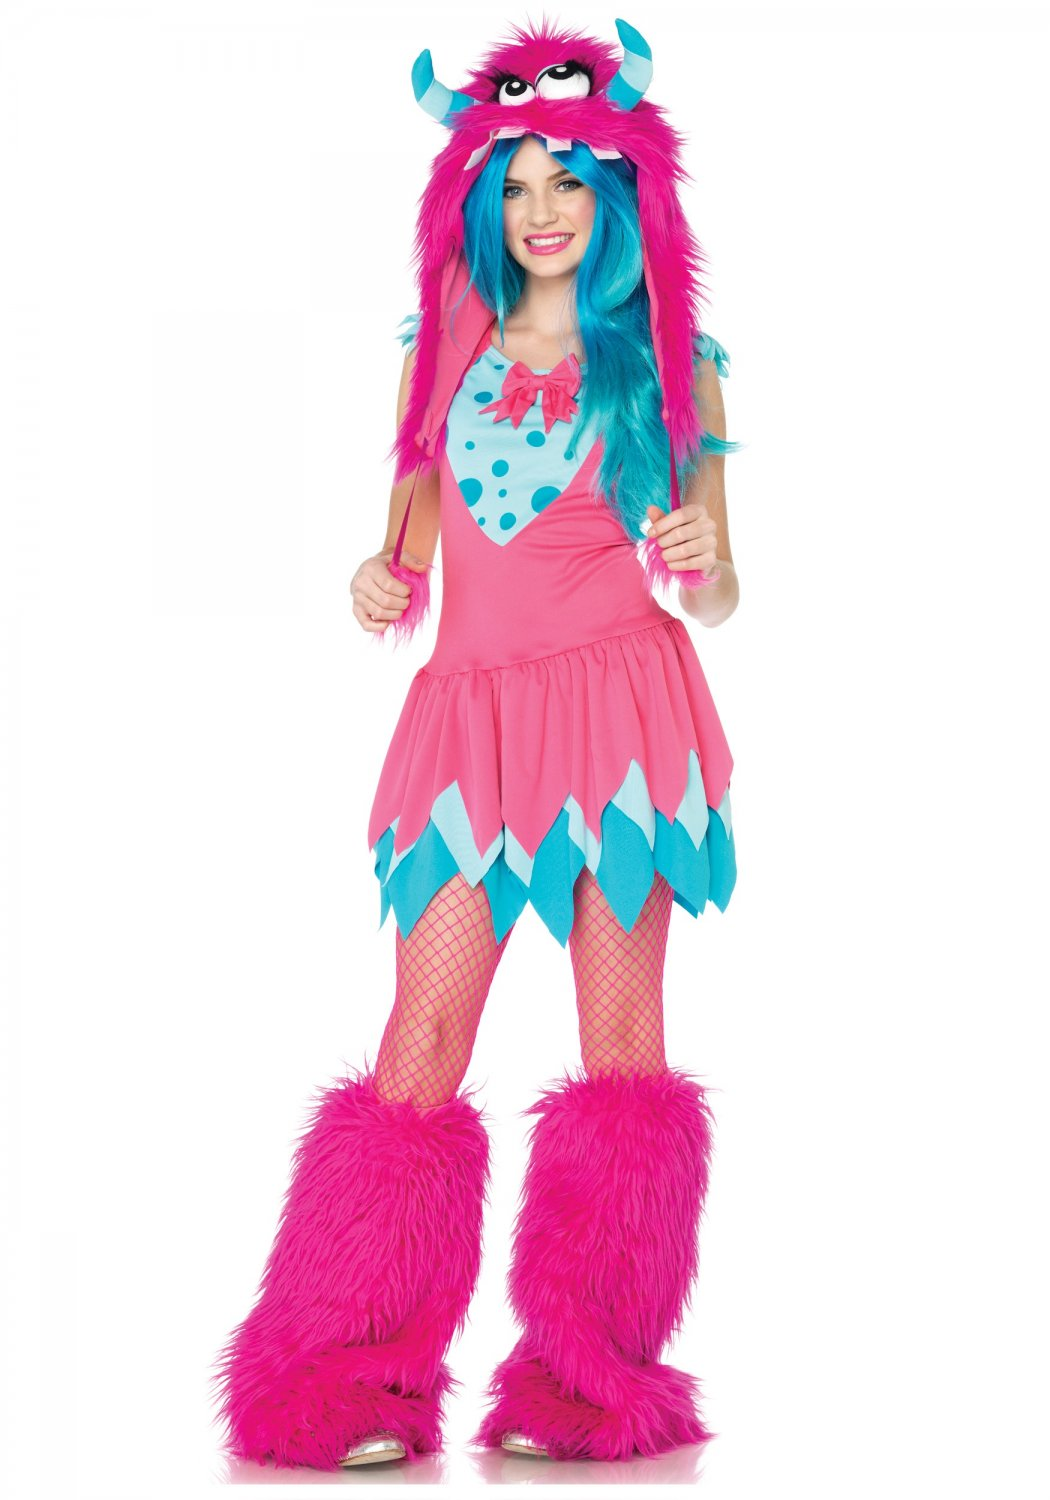 Junior Mischief Pink Monster Rave Fur Teen  Leg Avenue Adult Costume Size: Small/Medium #48066